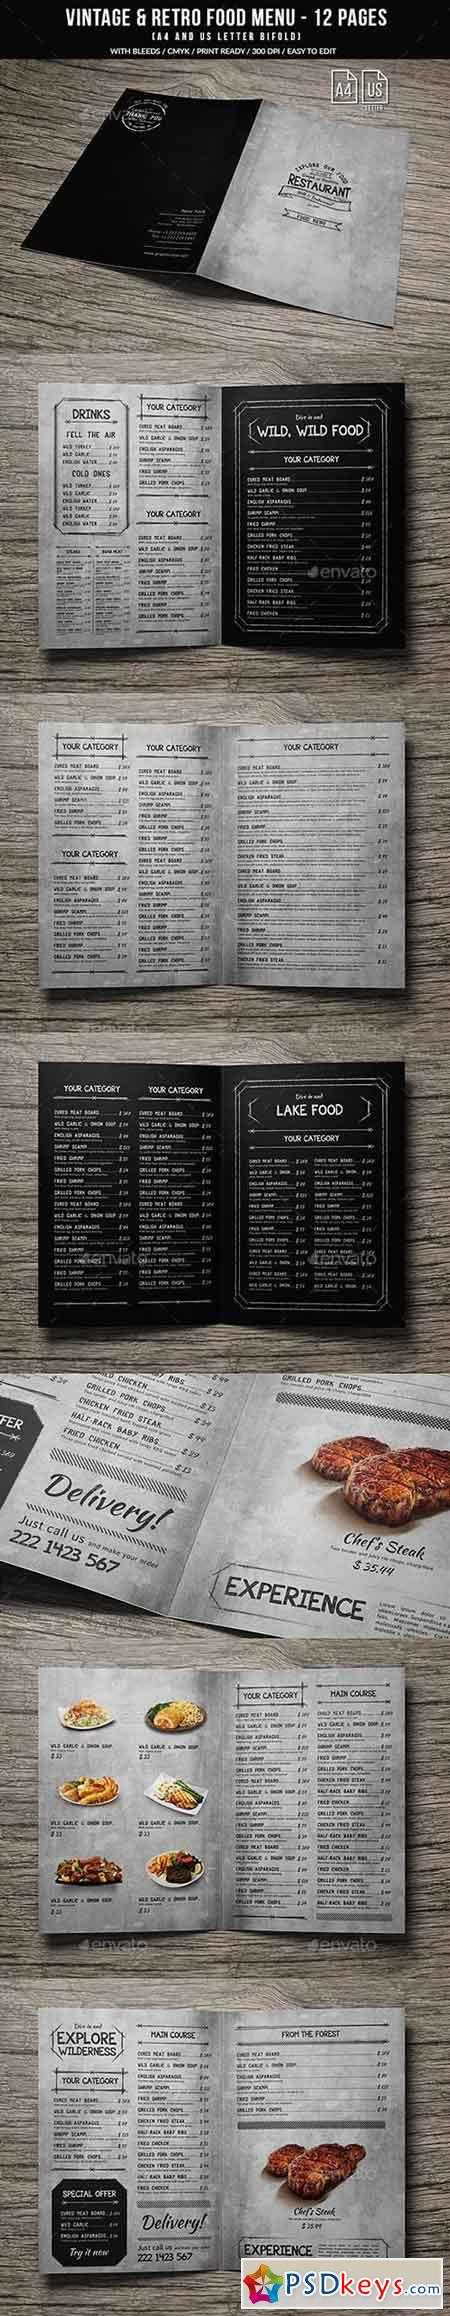 Vintage And Retro Bifold Menu A4 & US Letter - 12 pgs 20709252